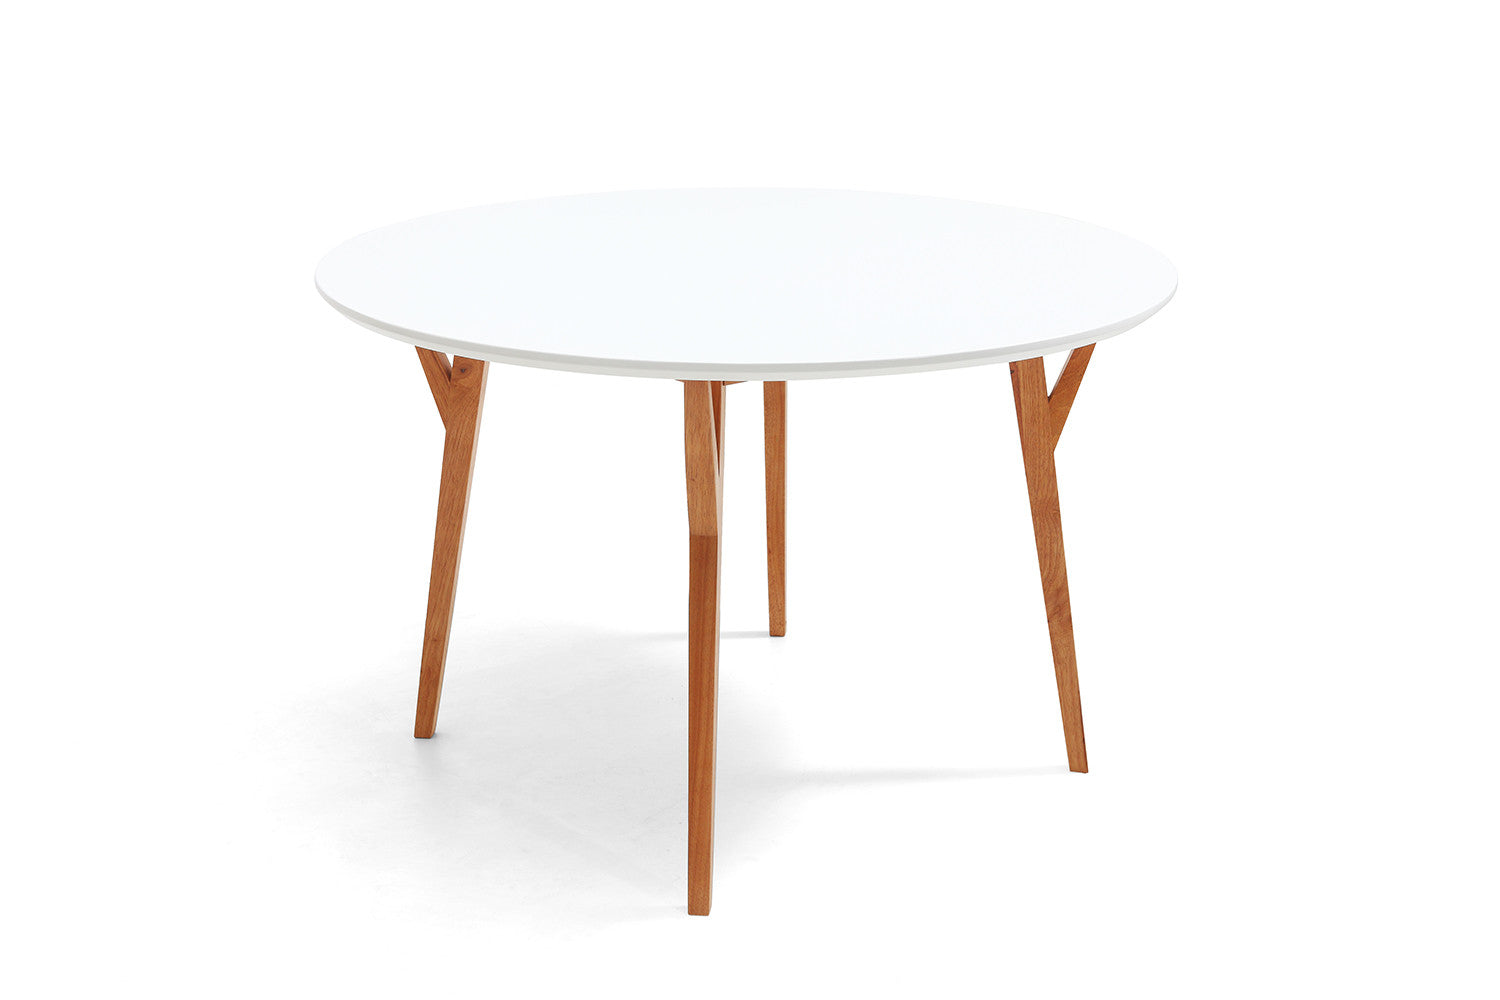 Table de salle manger ronde design scandinave moesa dewarens - Table salle a manger blanche design ...